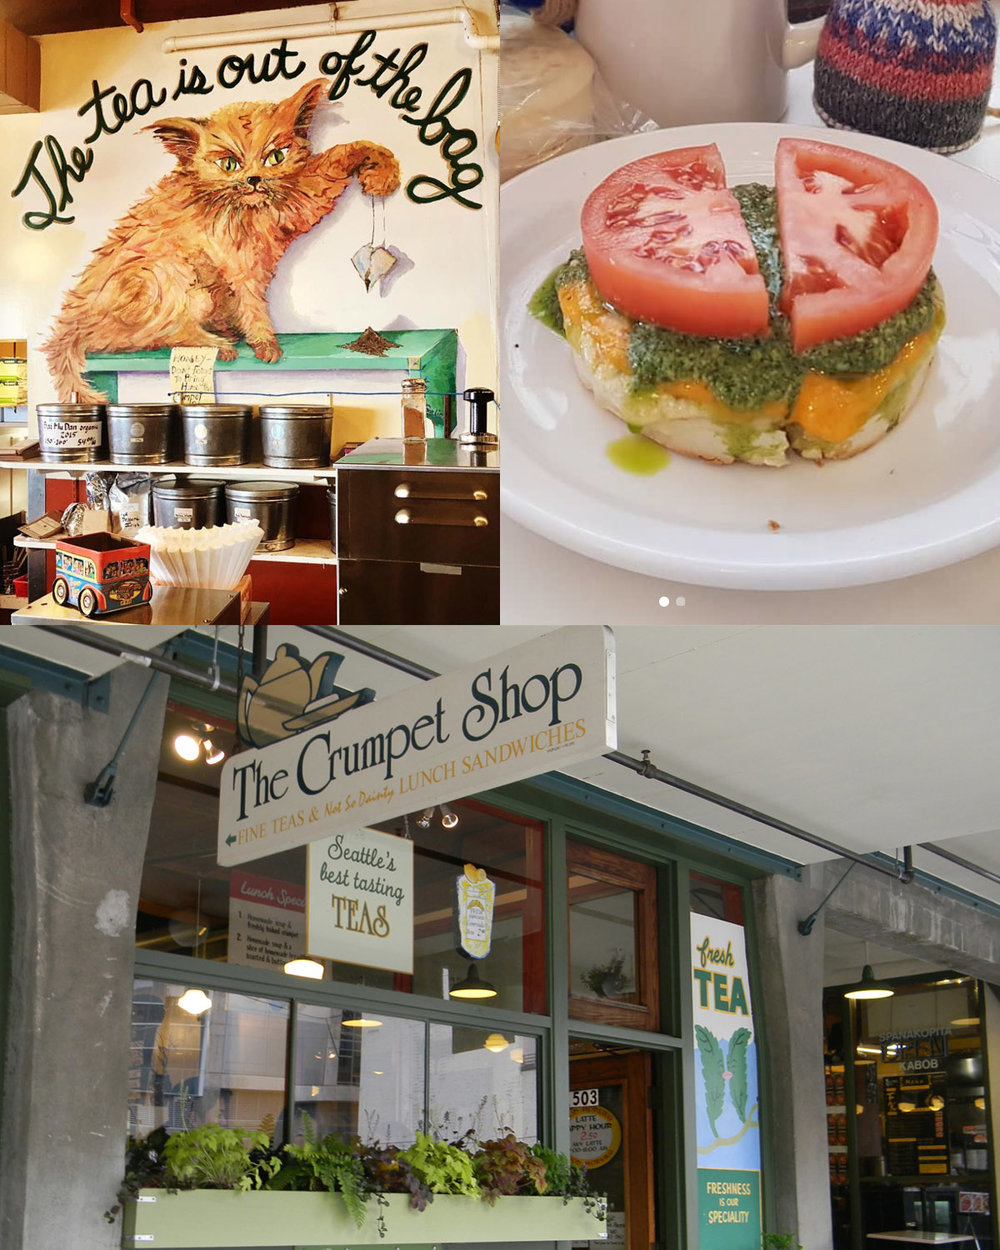 The Crumpet Shop - The Crumpet Shop is a Pike Place market destination. Fresh crumpets,fine teas, and coffees.